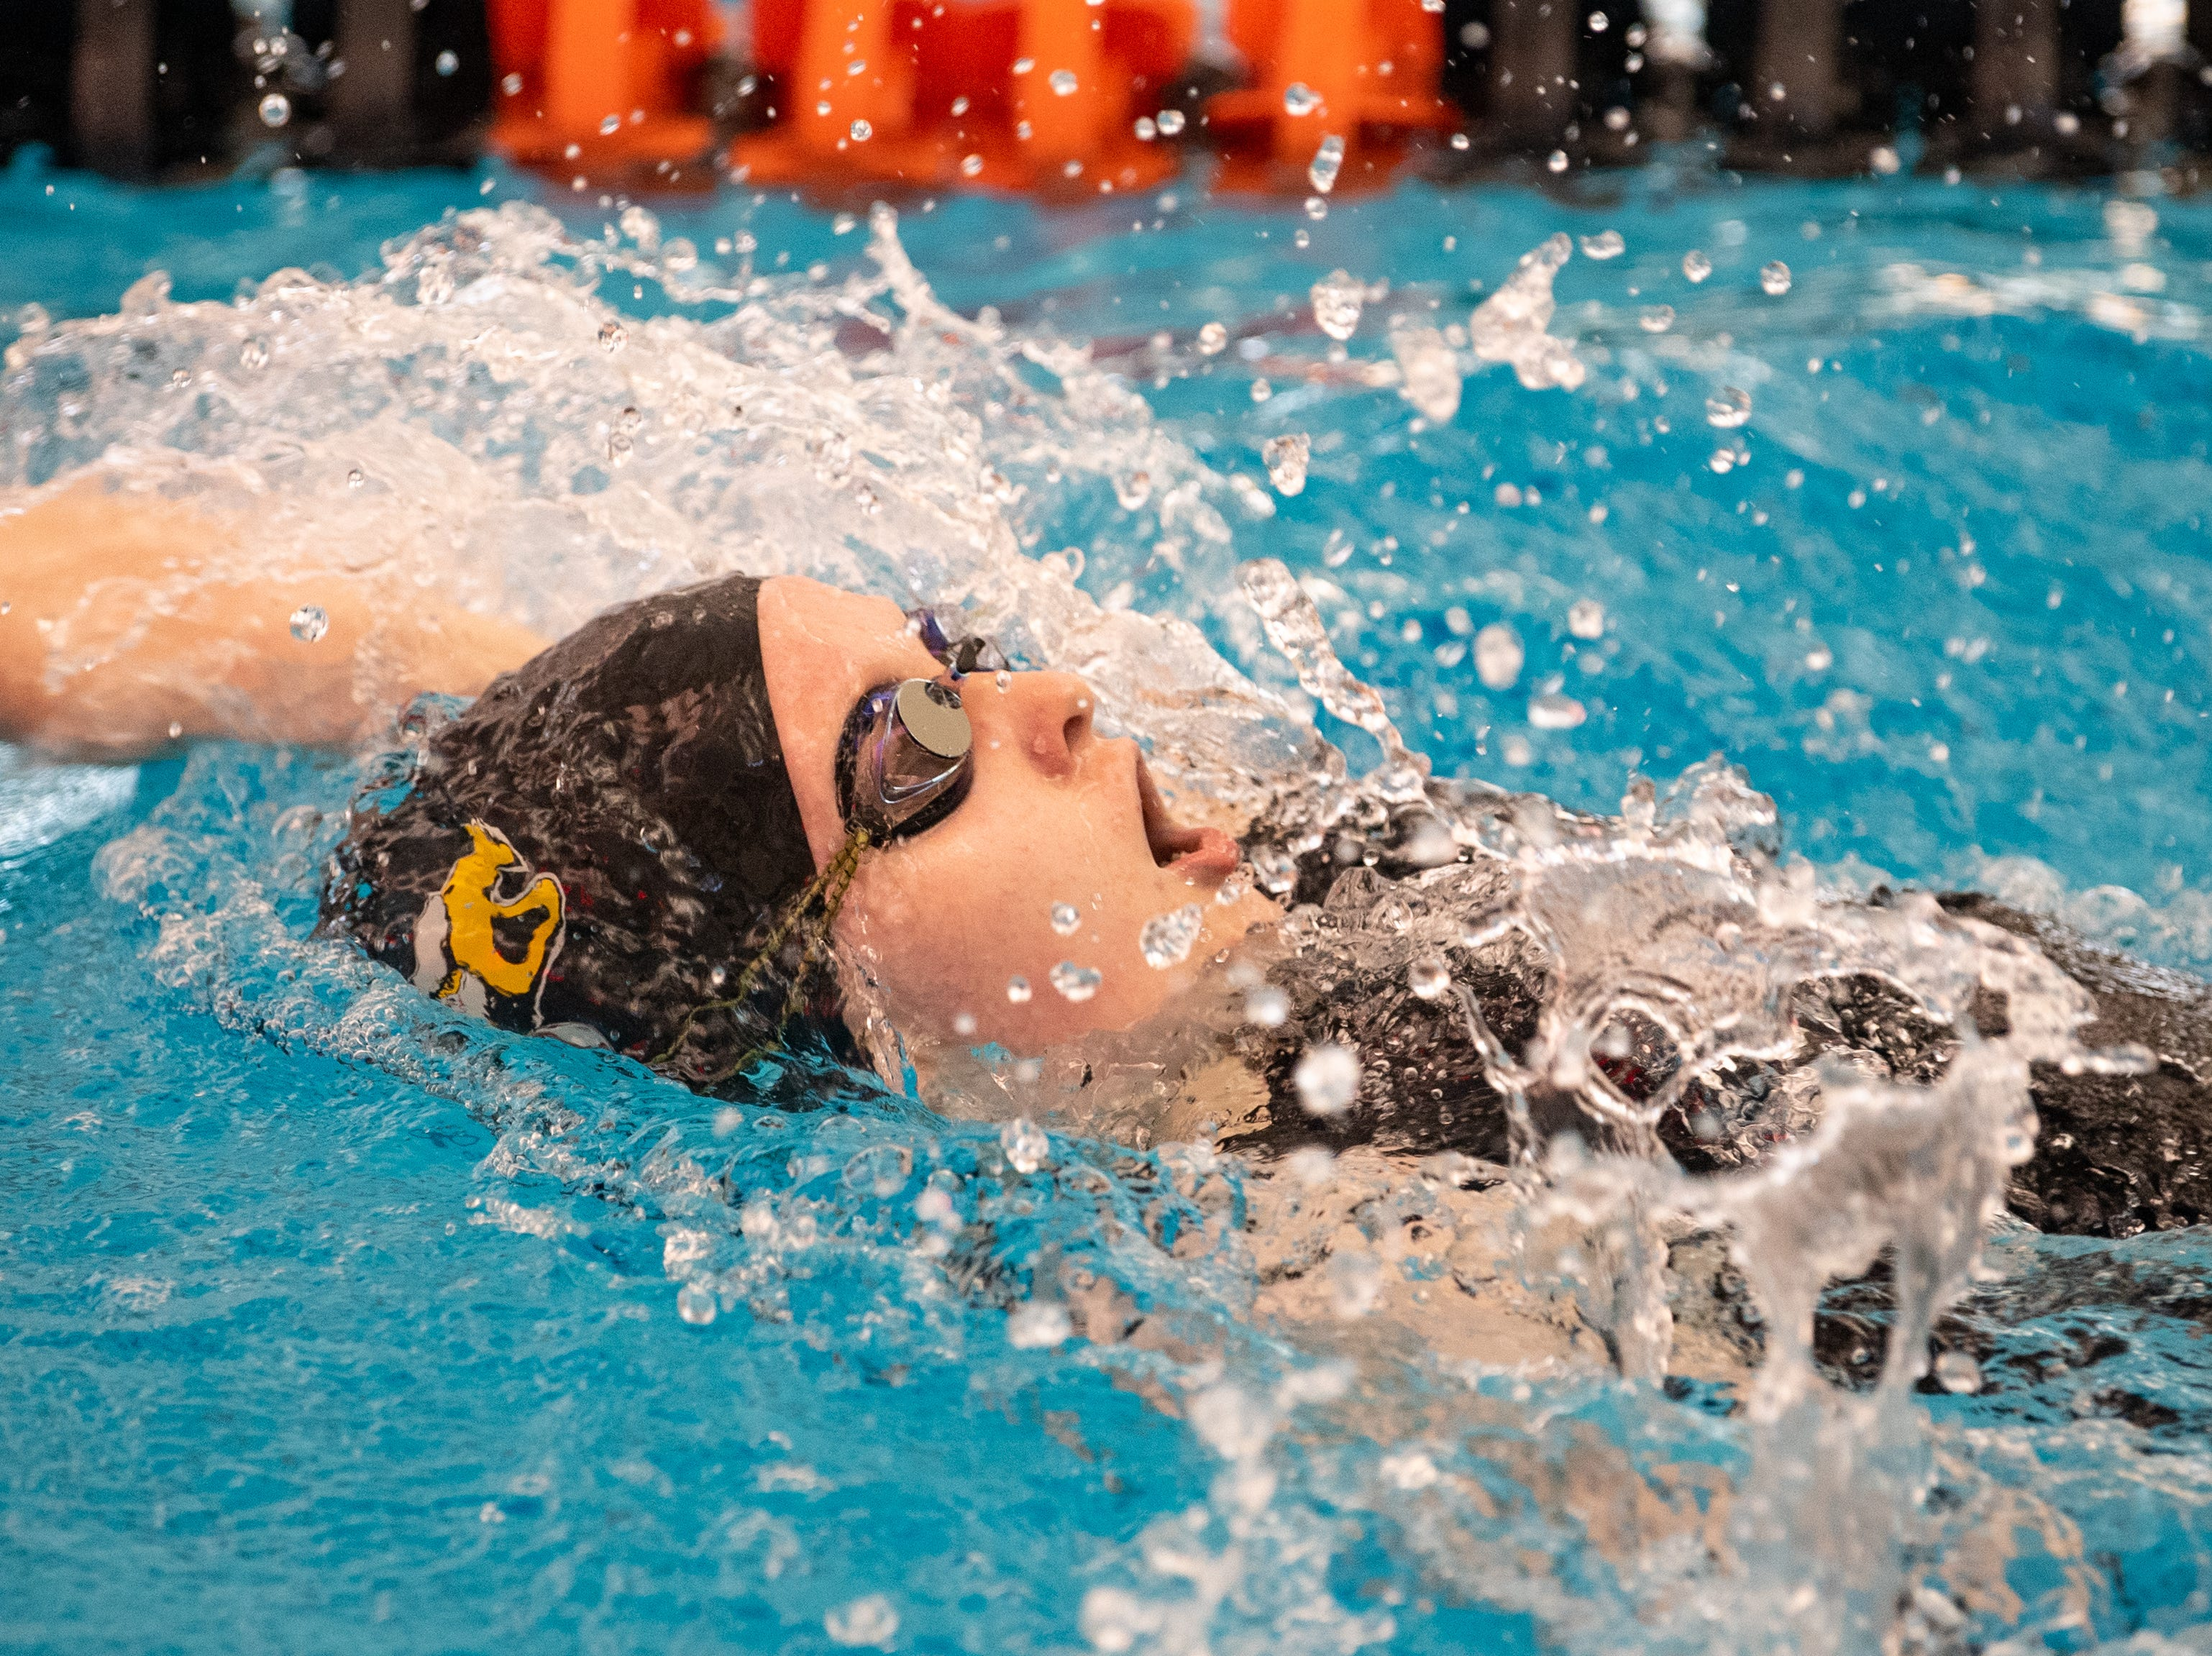 Madelynn Kinnard of Dover competes in the Girls 100 Yard Backstroke during the 2019 YAIAA Swimming and Diving Championships at Central York High School, February 9, 2019.